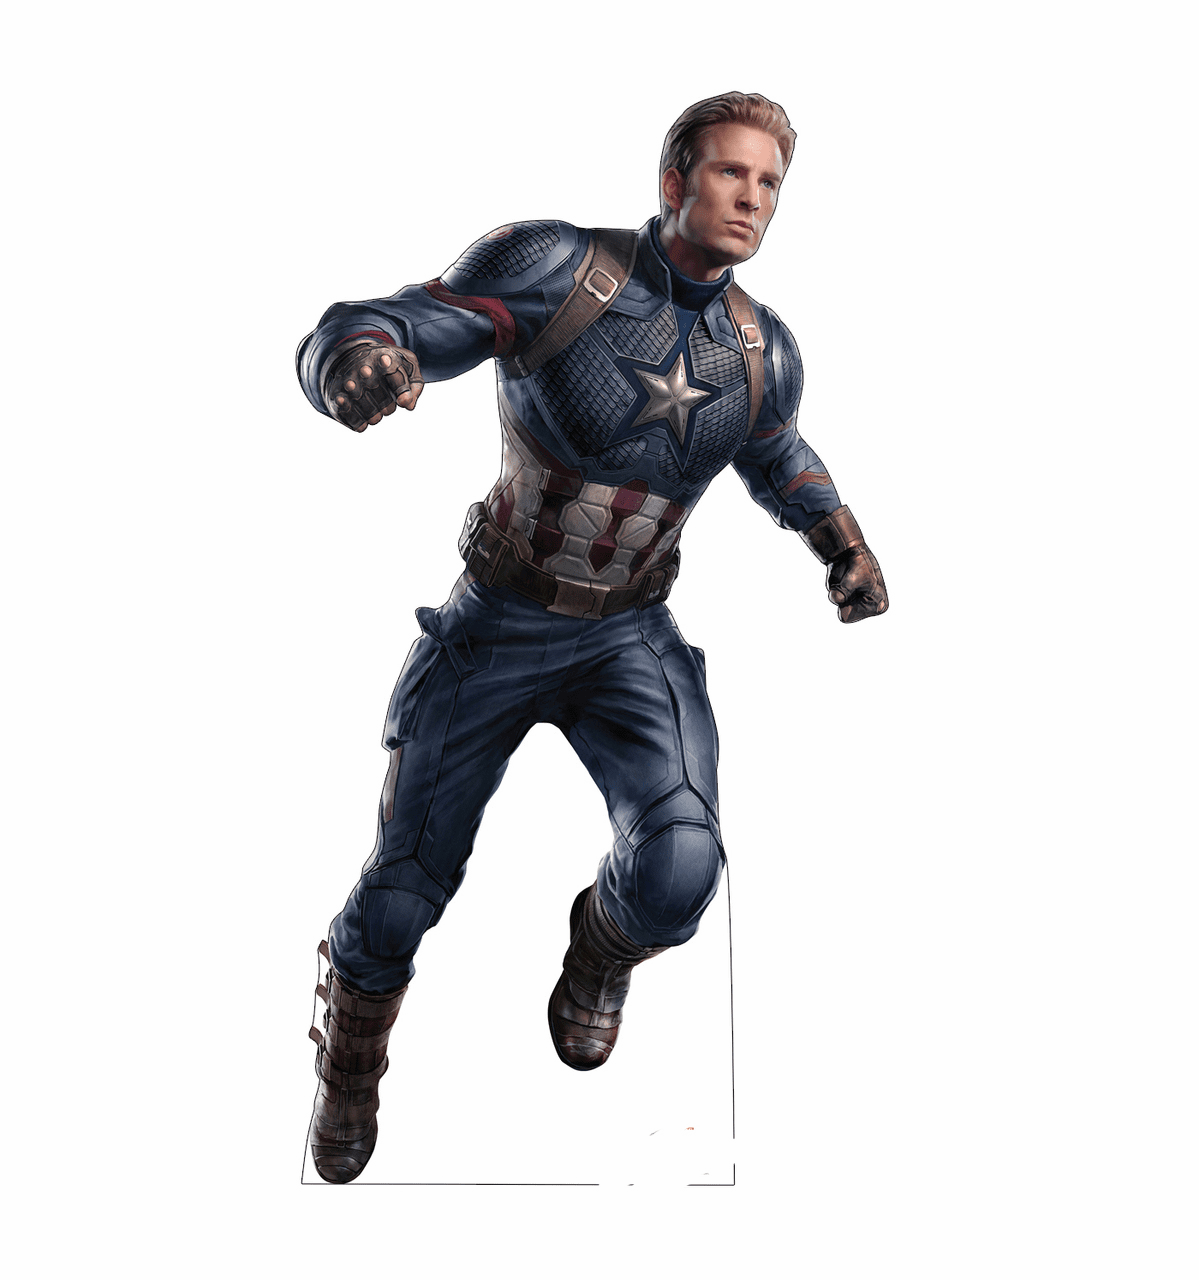 Avengers Captain America Take Off Standee